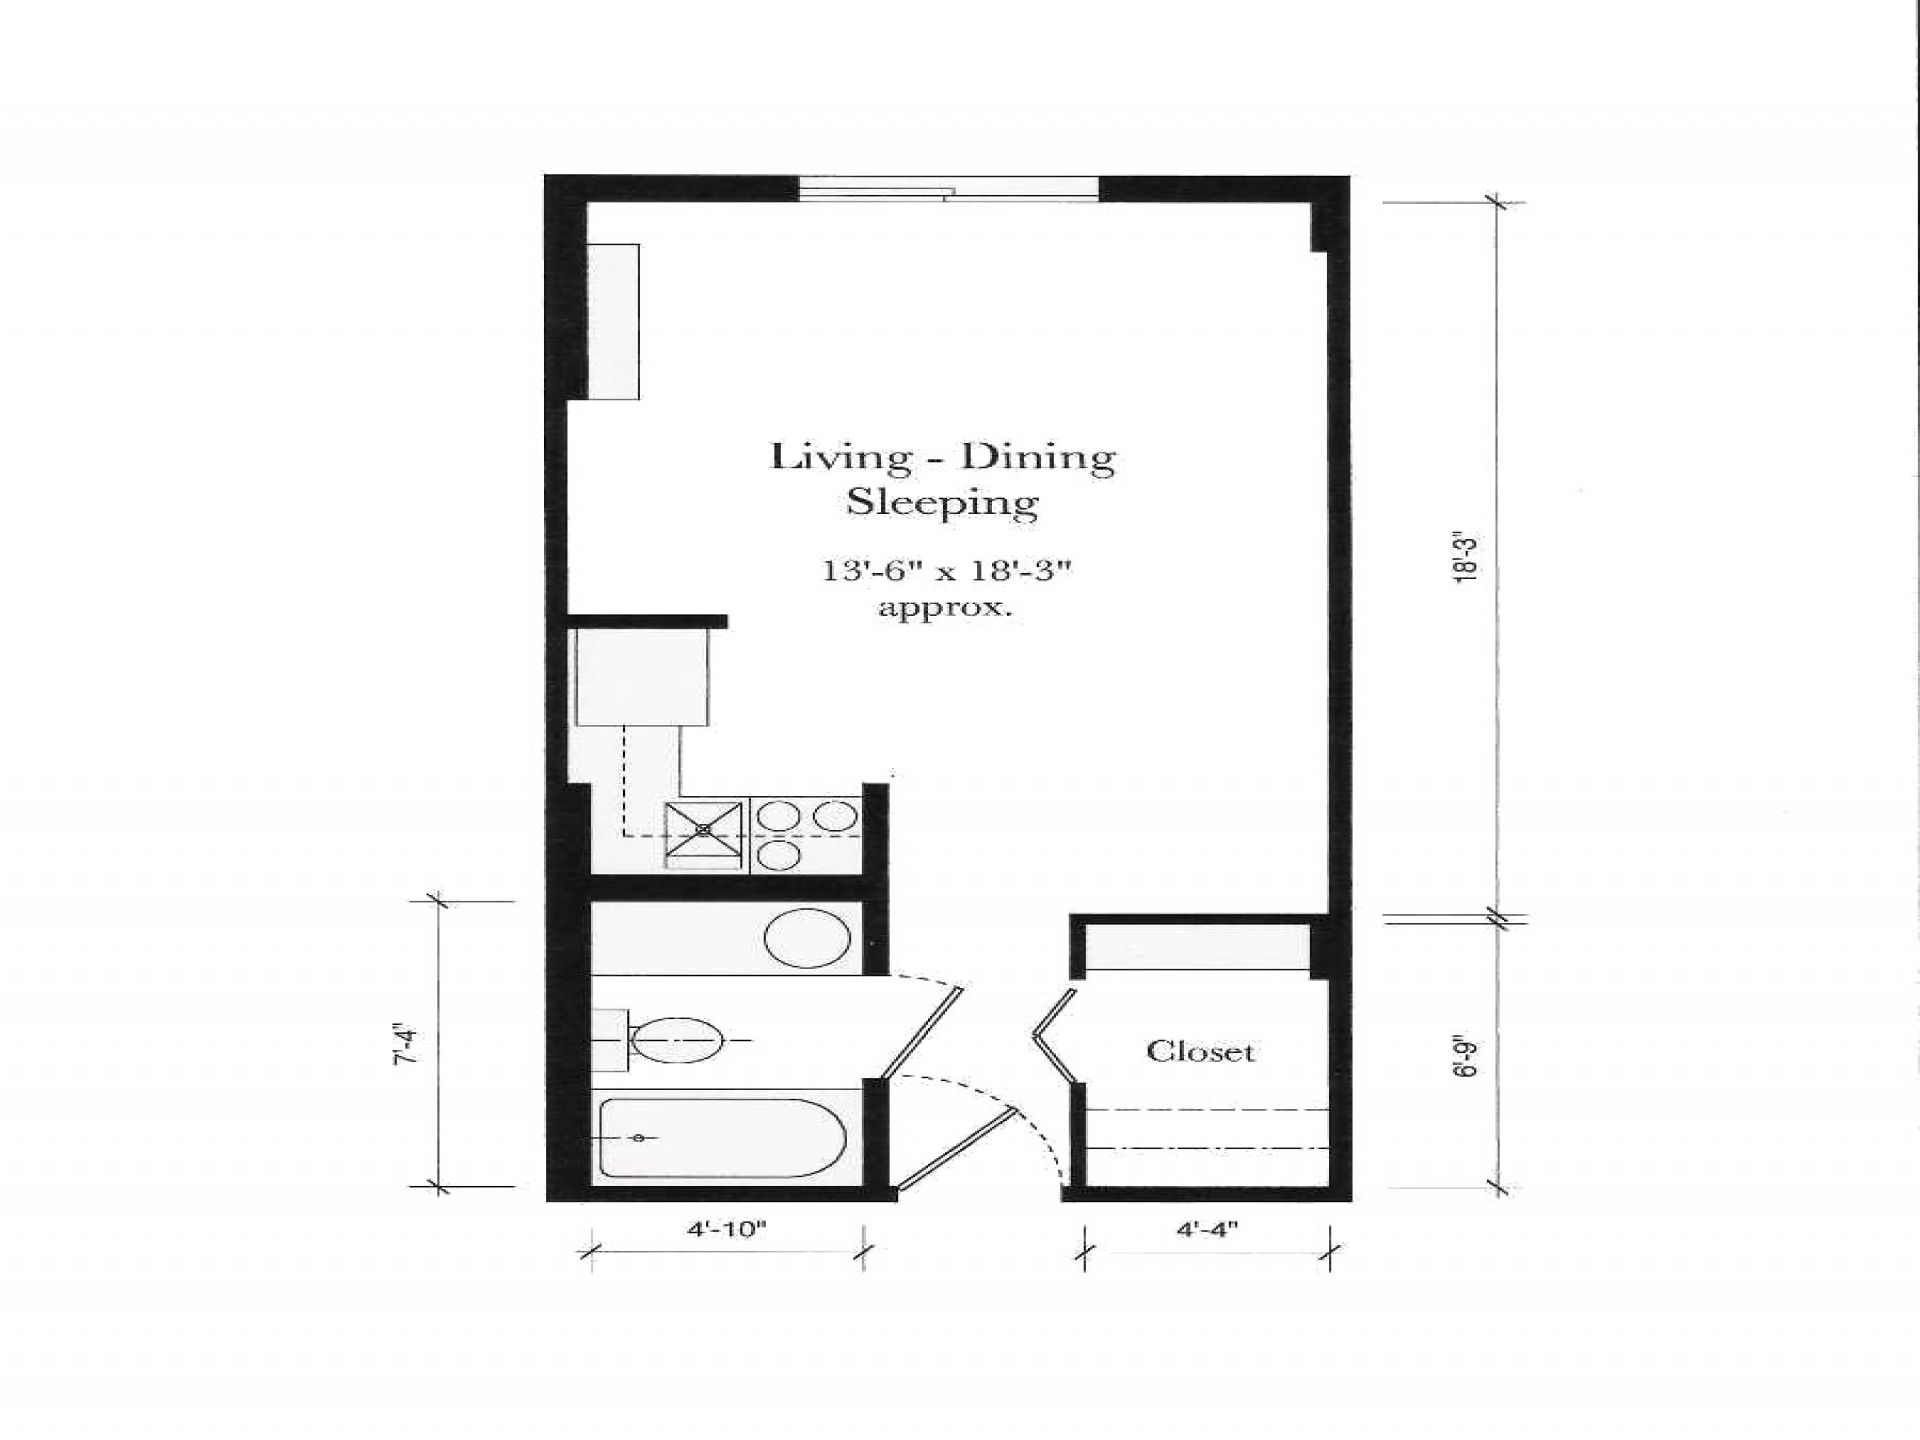 Studio Apartment Layout Plans apartment studio floor plan simple floor design studio apartment